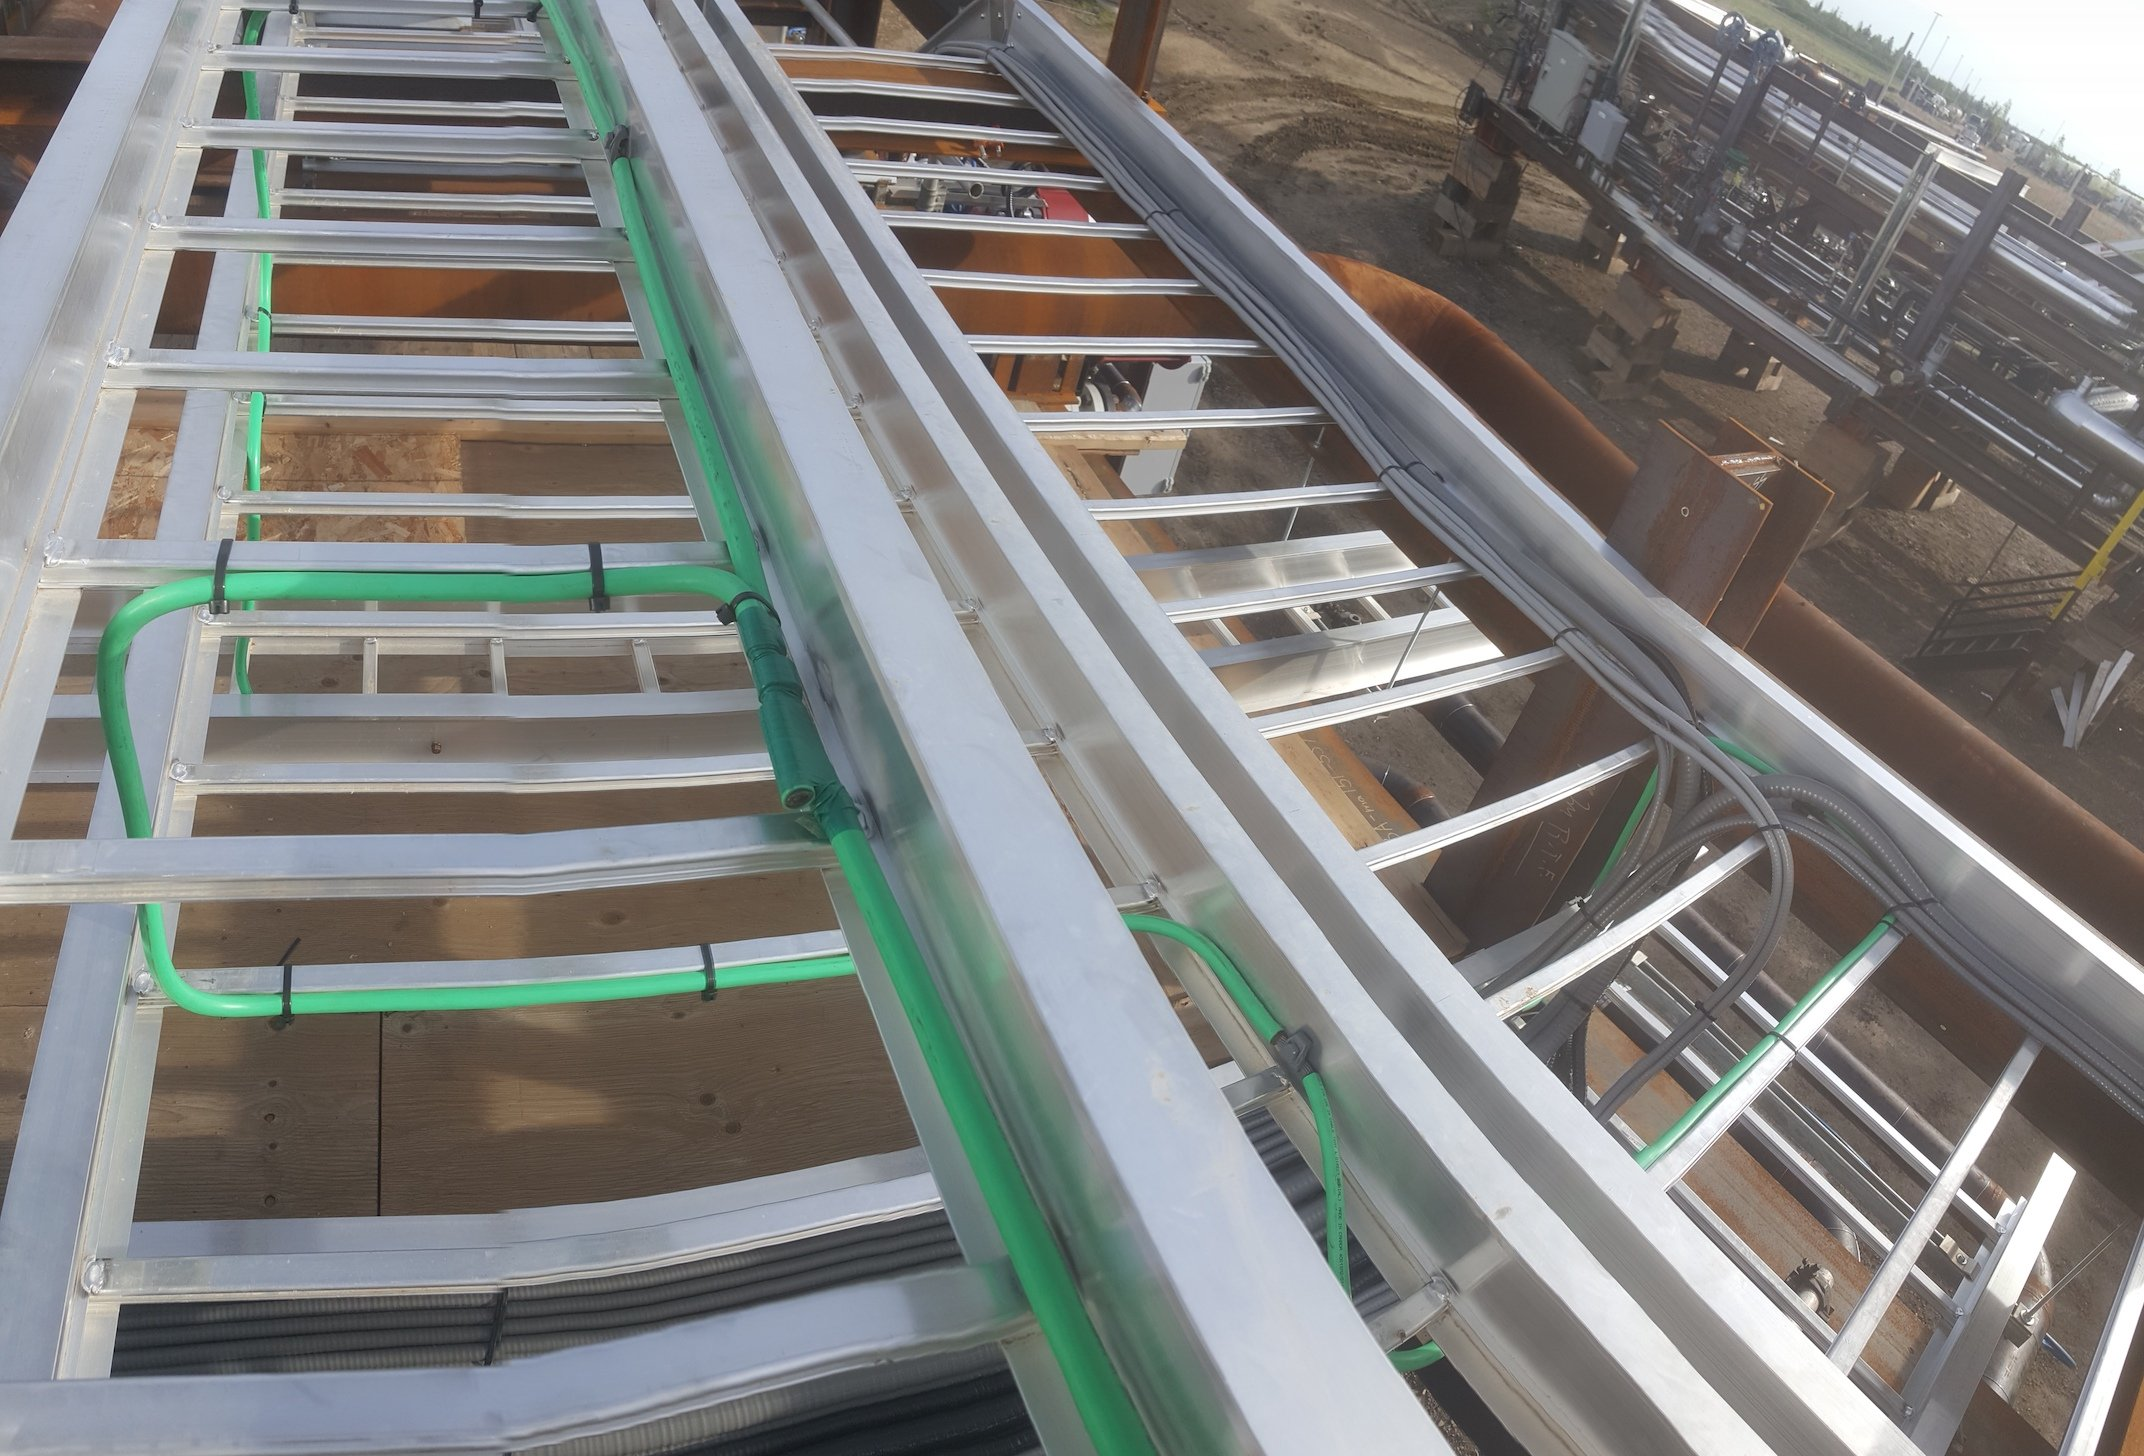 Electrical Bonding Cable Tray